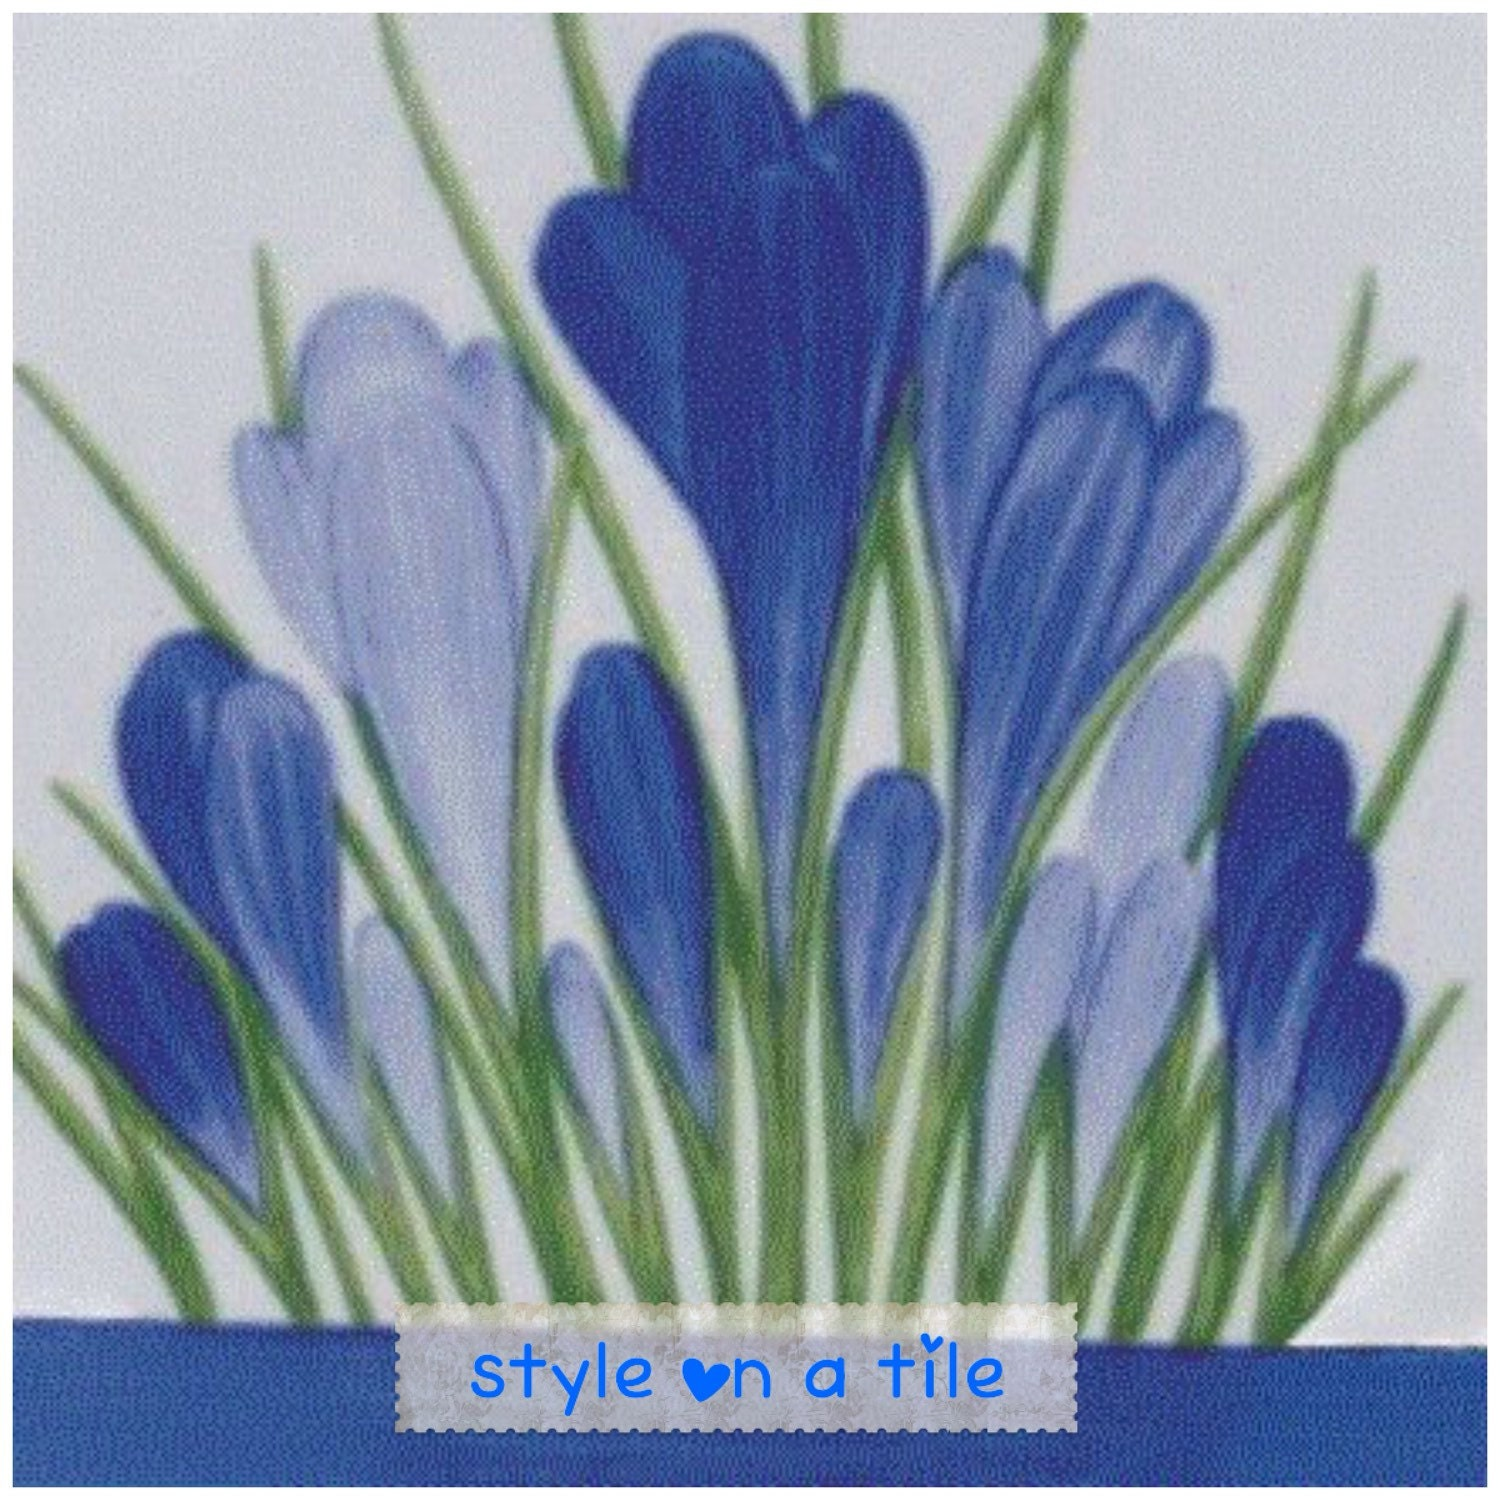 Lovely Clarice Cliff Blue Spring Crocus small ceramic tile drink ...